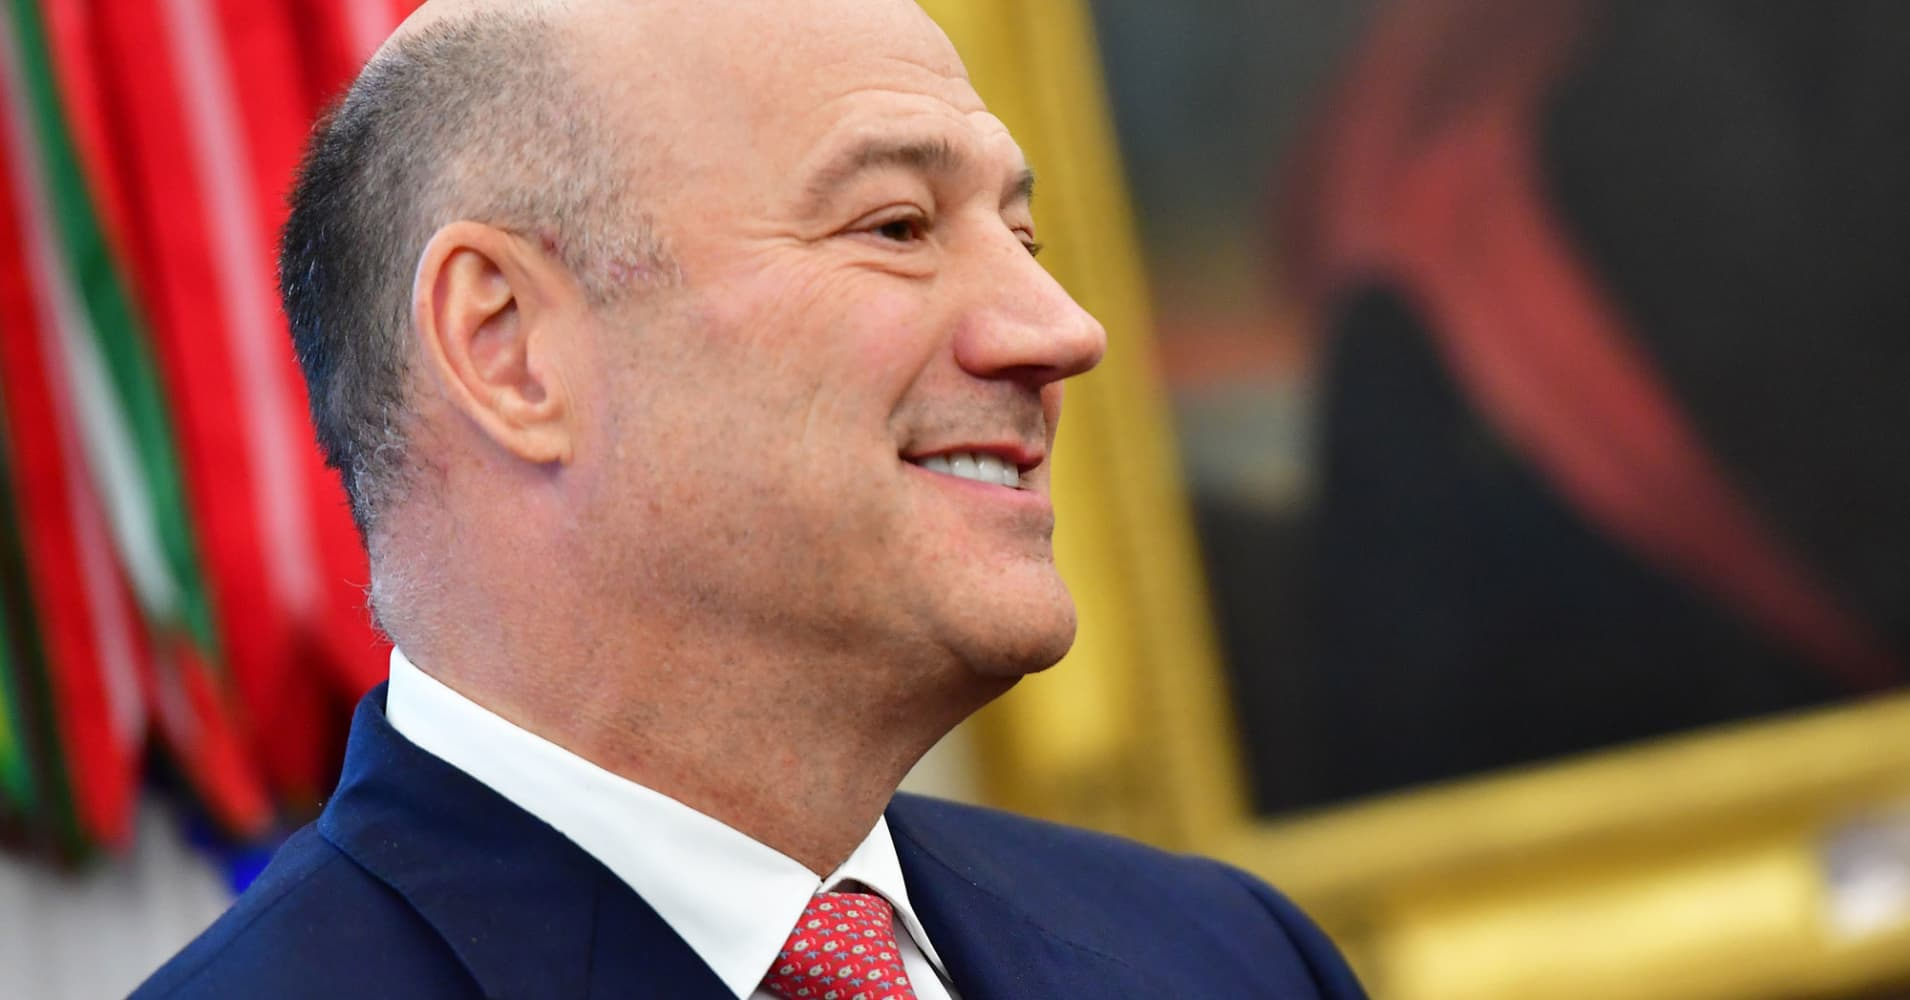 Former White House economic advisor Gary Cohn joins blockchain start-up